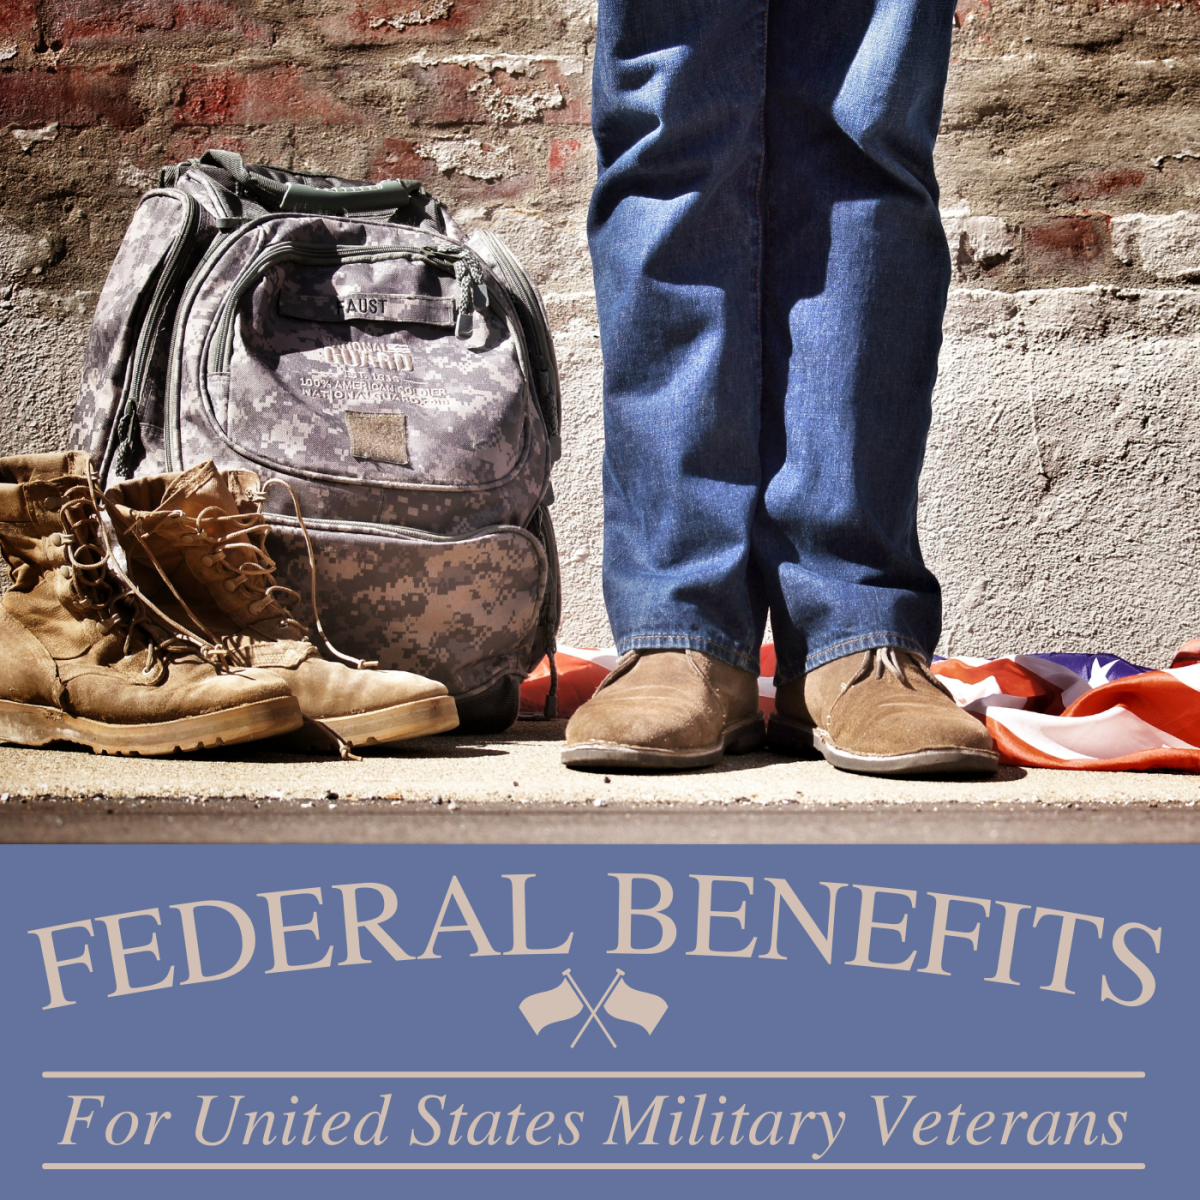 If you're an honorably discharged veteran of the US military, you're entitled to certain federal benefits.